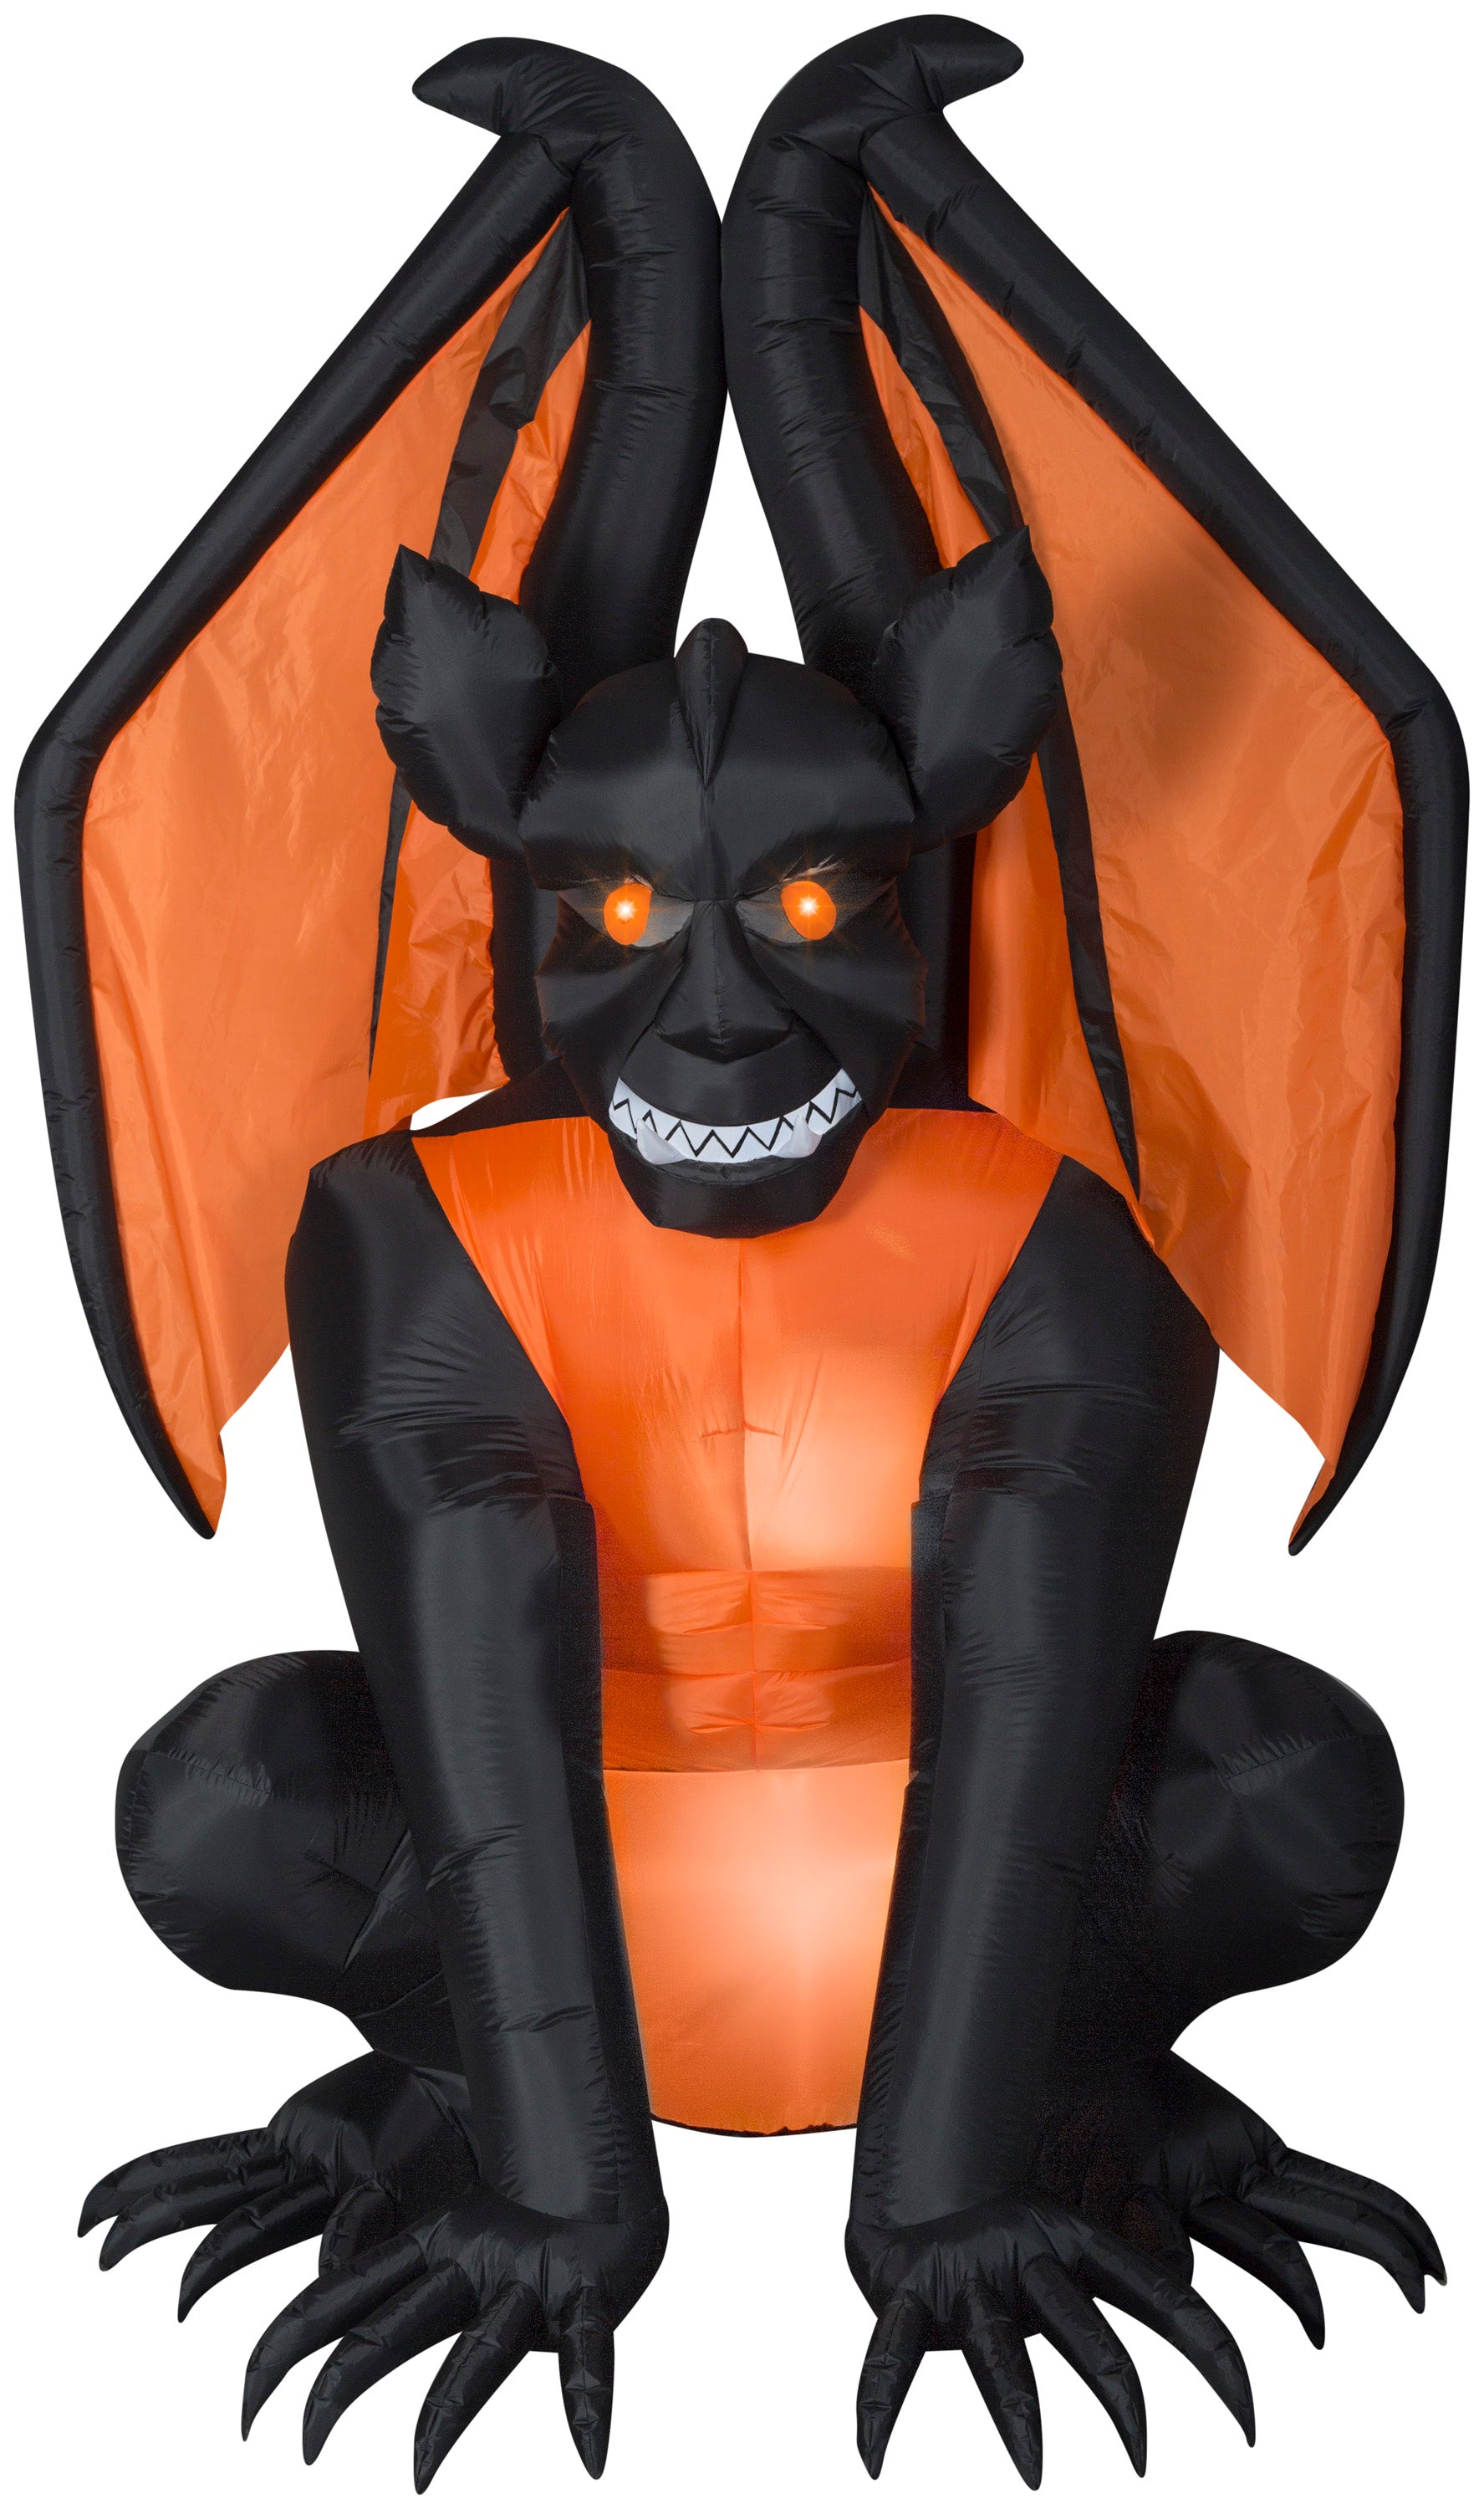 8' Airblown Gargoyle Halloween Inflatable